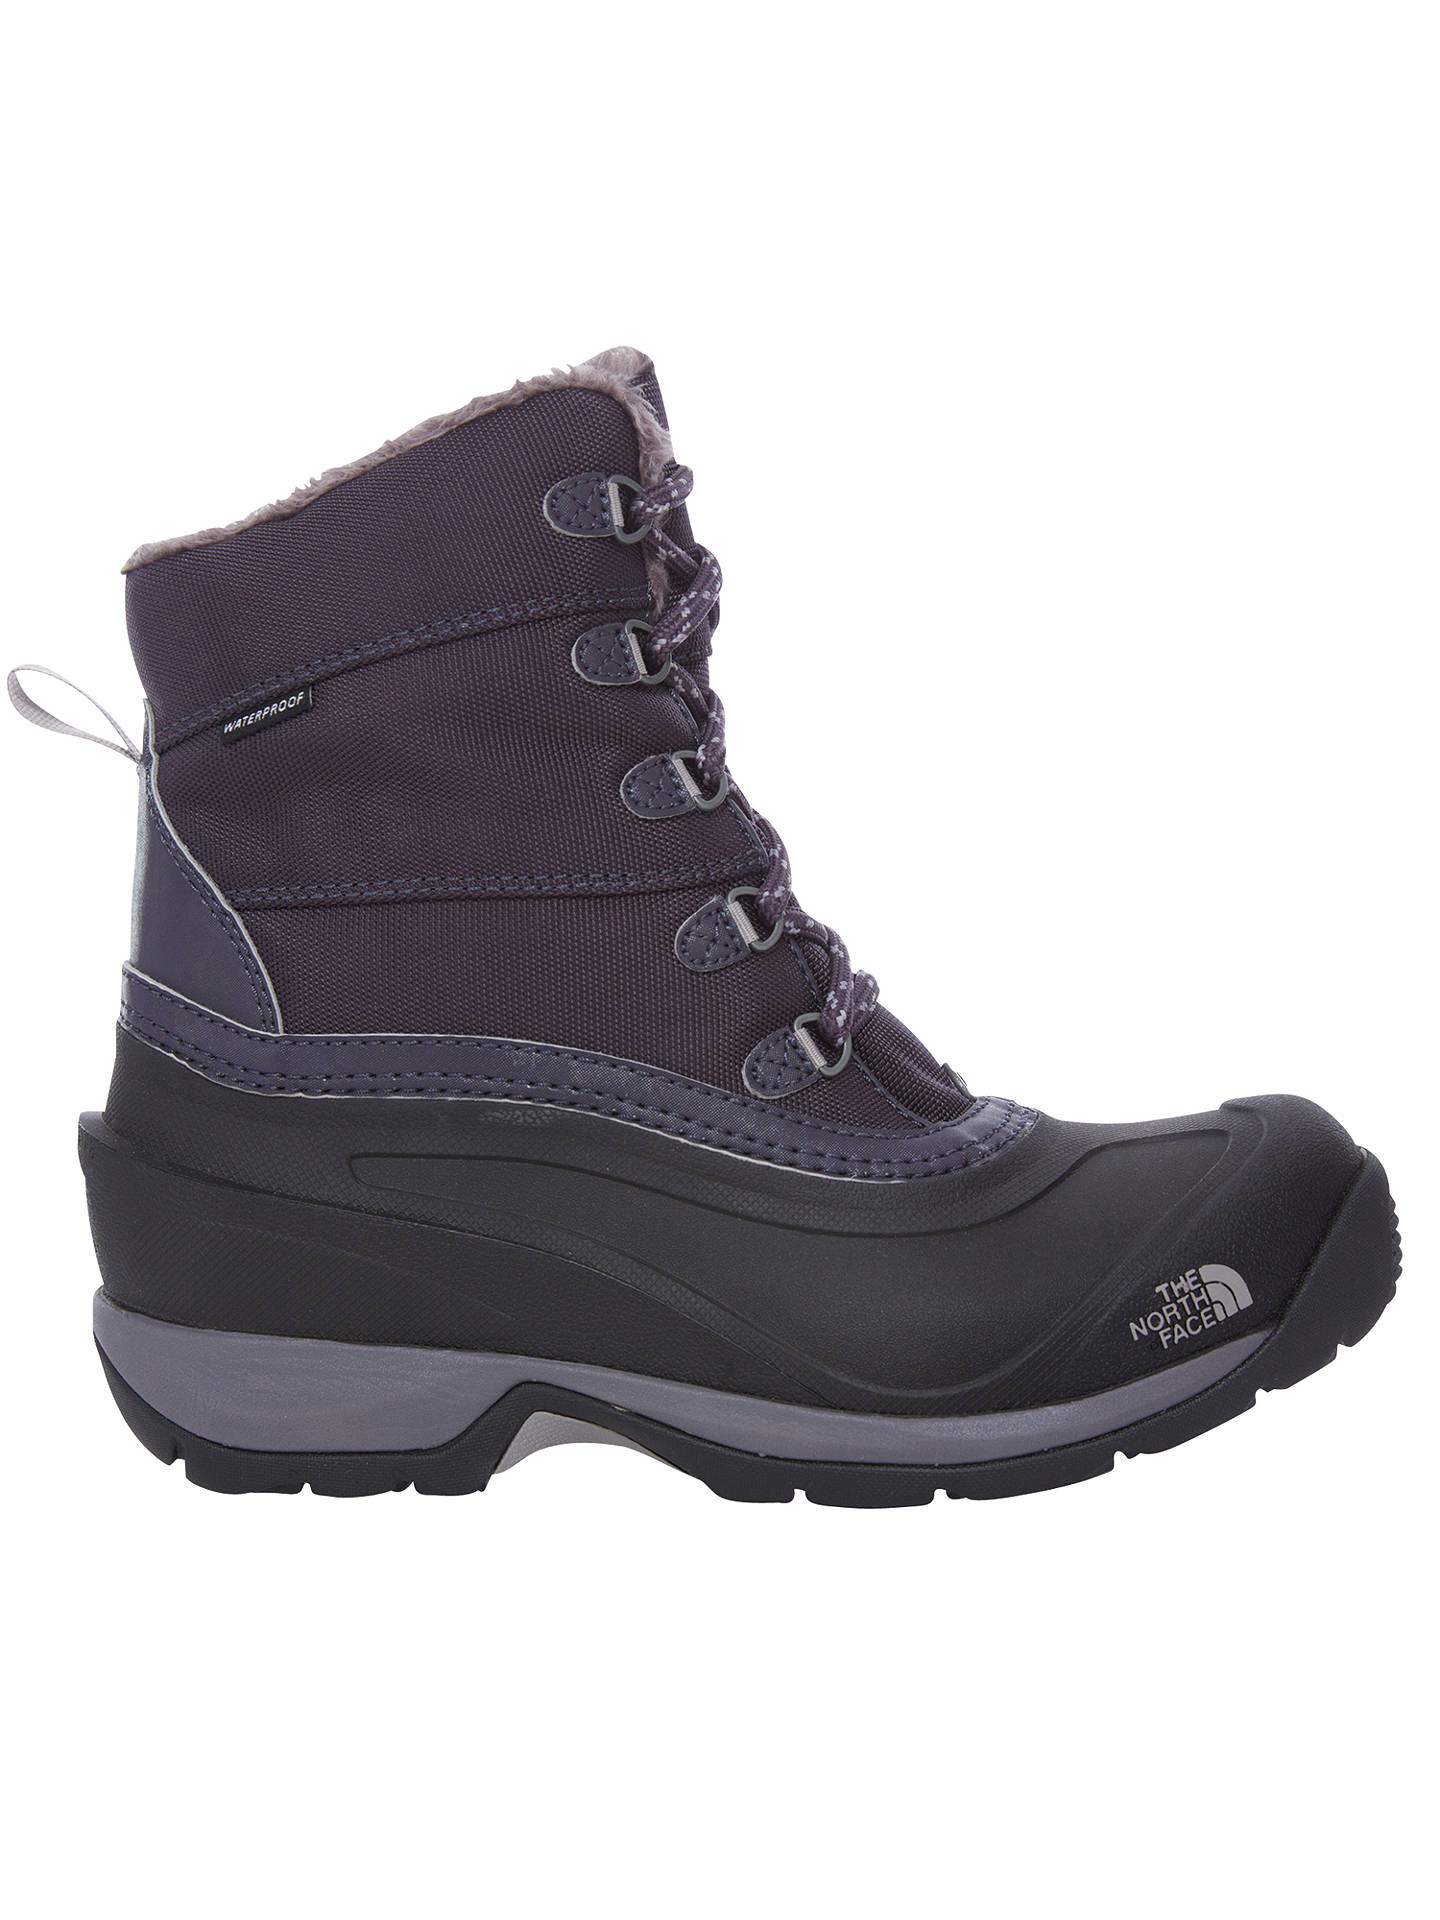 4514733522 Buy The North Face Chilkat III Women s Walking Boots